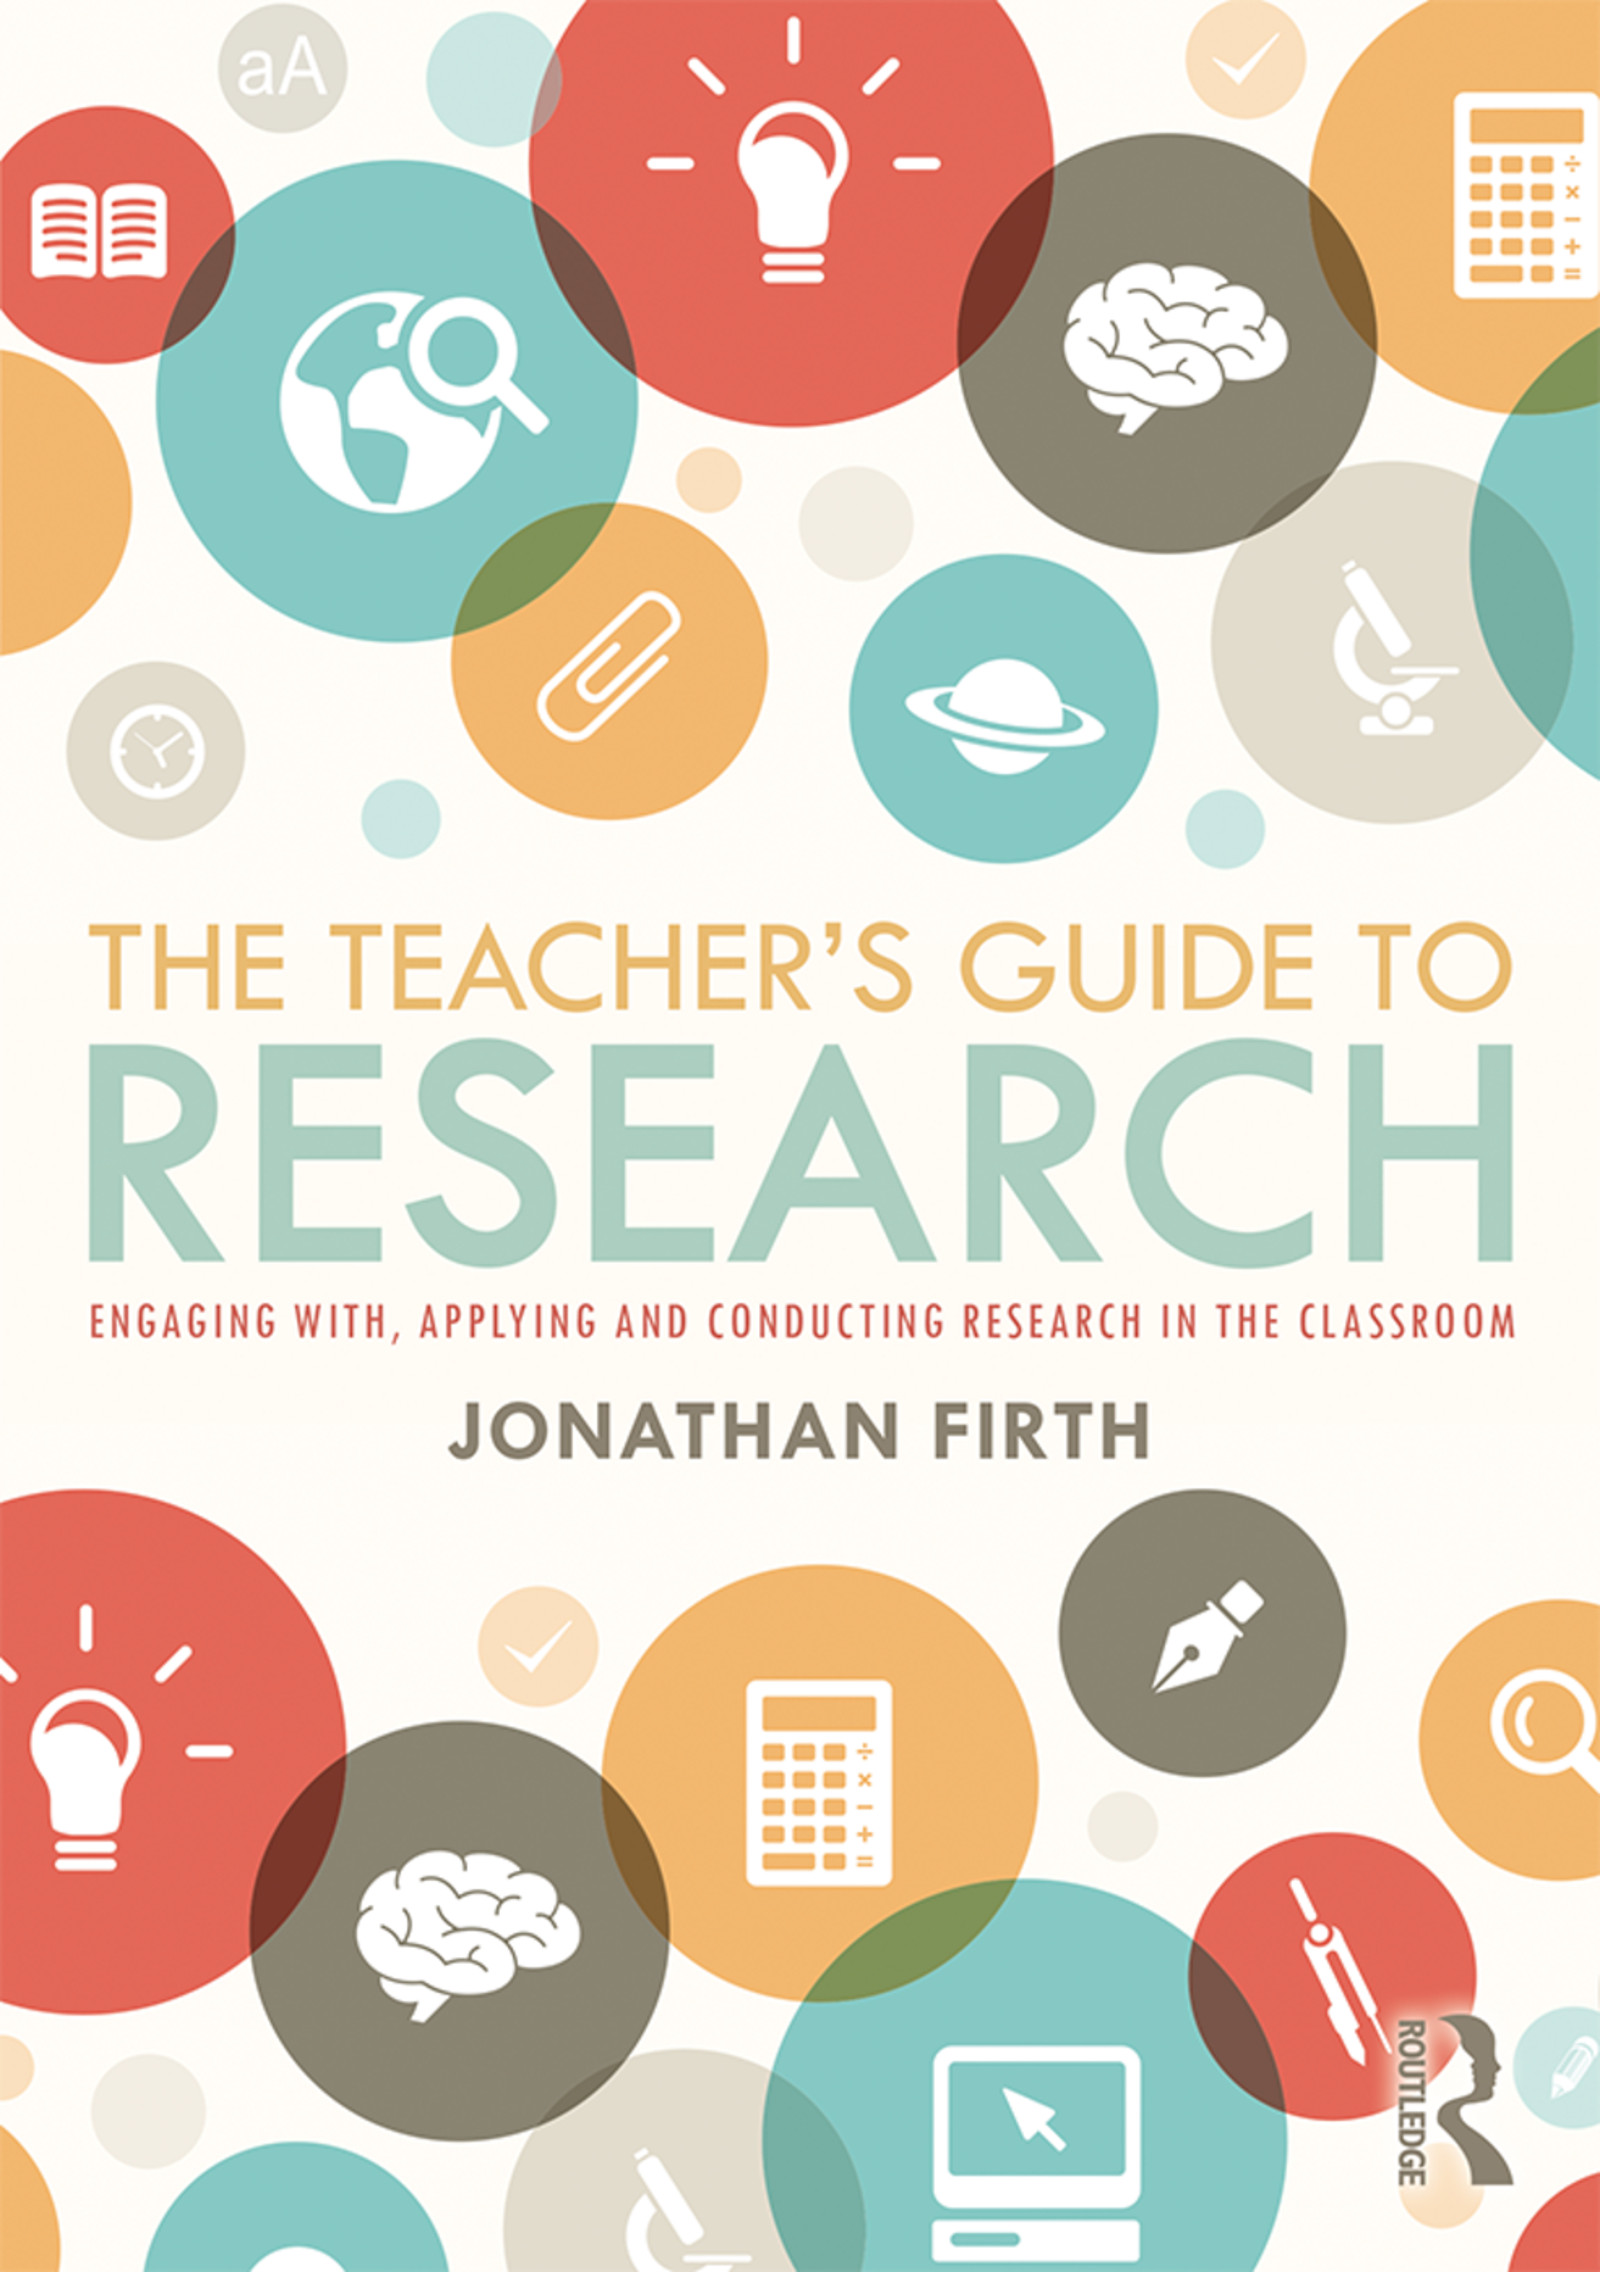 The Teacher's Guide to Research: Engaging with, Applying and Conducting Research in the Classroom book cover